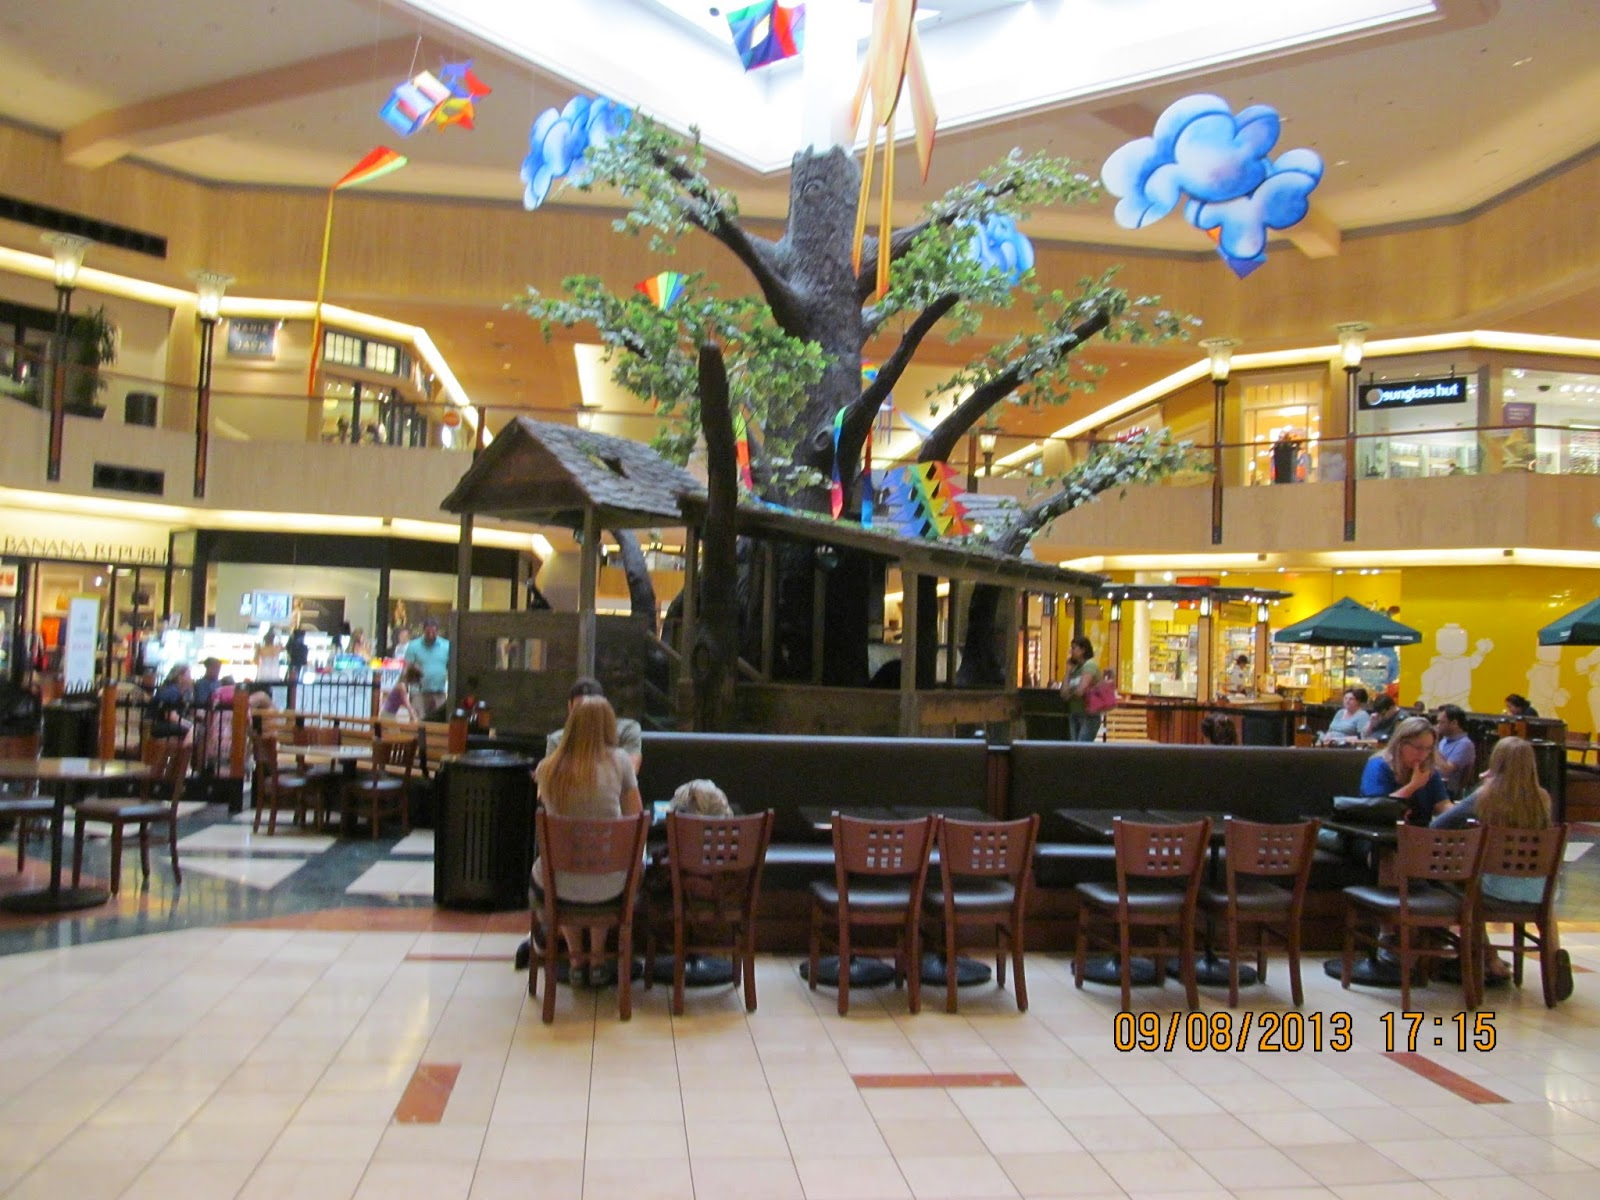 They outlined their vision of a mall with fewer anchor stores and more non-traditional uses. Recently, the Northbrook Board of Trustees approved a proposal for a Hi-Five Sports Clubs facility to open in the mall. In January , Macy's sold its space at Northbrook Court to GGP for $25 million.